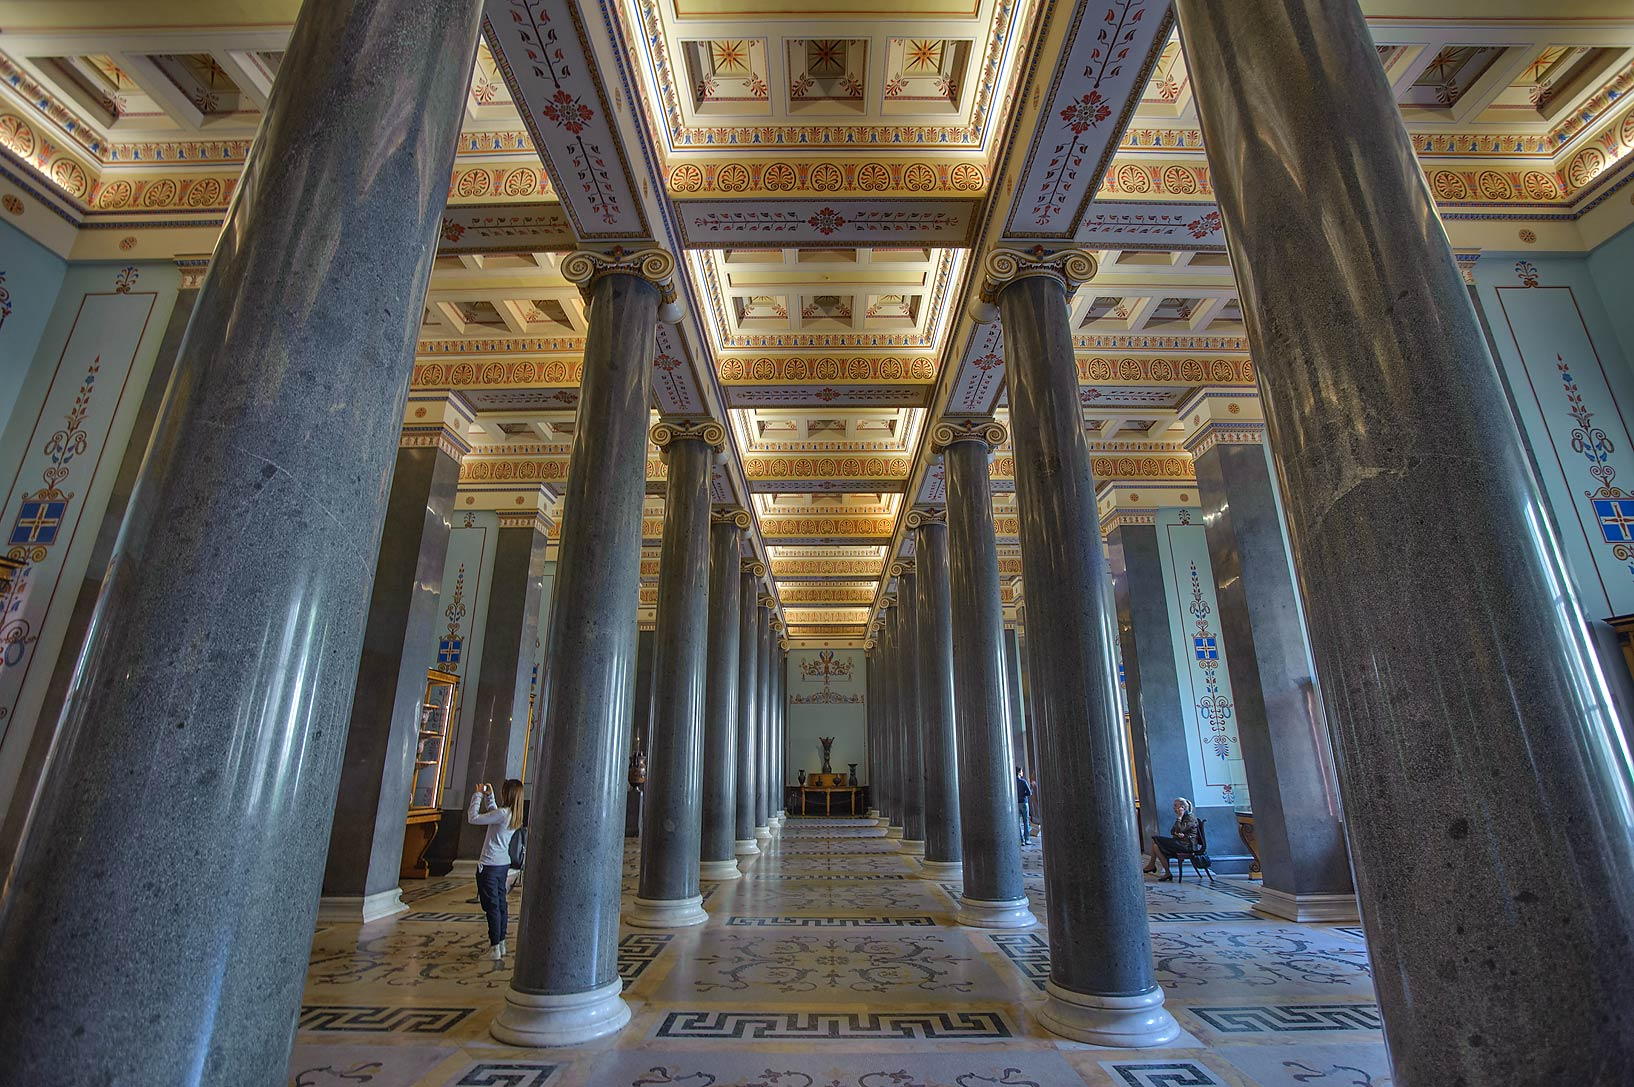 Hall of Twenty Columns (ancient art) in Hermitage Museum. Petersburg, Russia